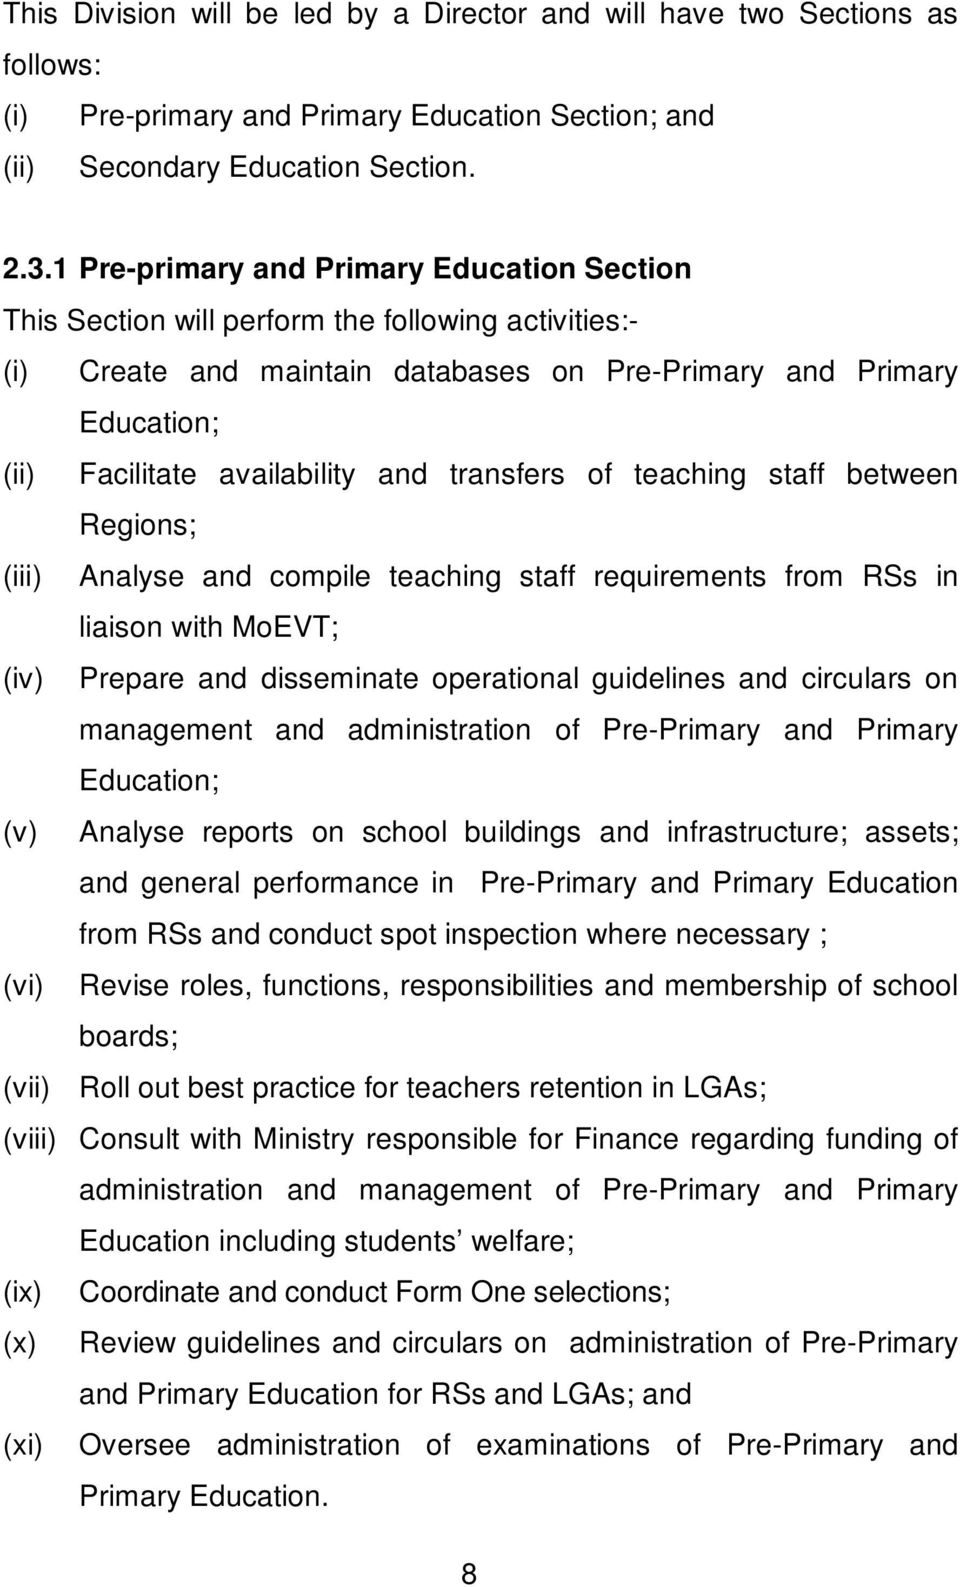 and transfers of teaching staff between Regions; (iii) Analyse and compile teaching staff requirements from RSs in liaison with MoEVT; (iv) Prepare and disseminate operational guidelines and